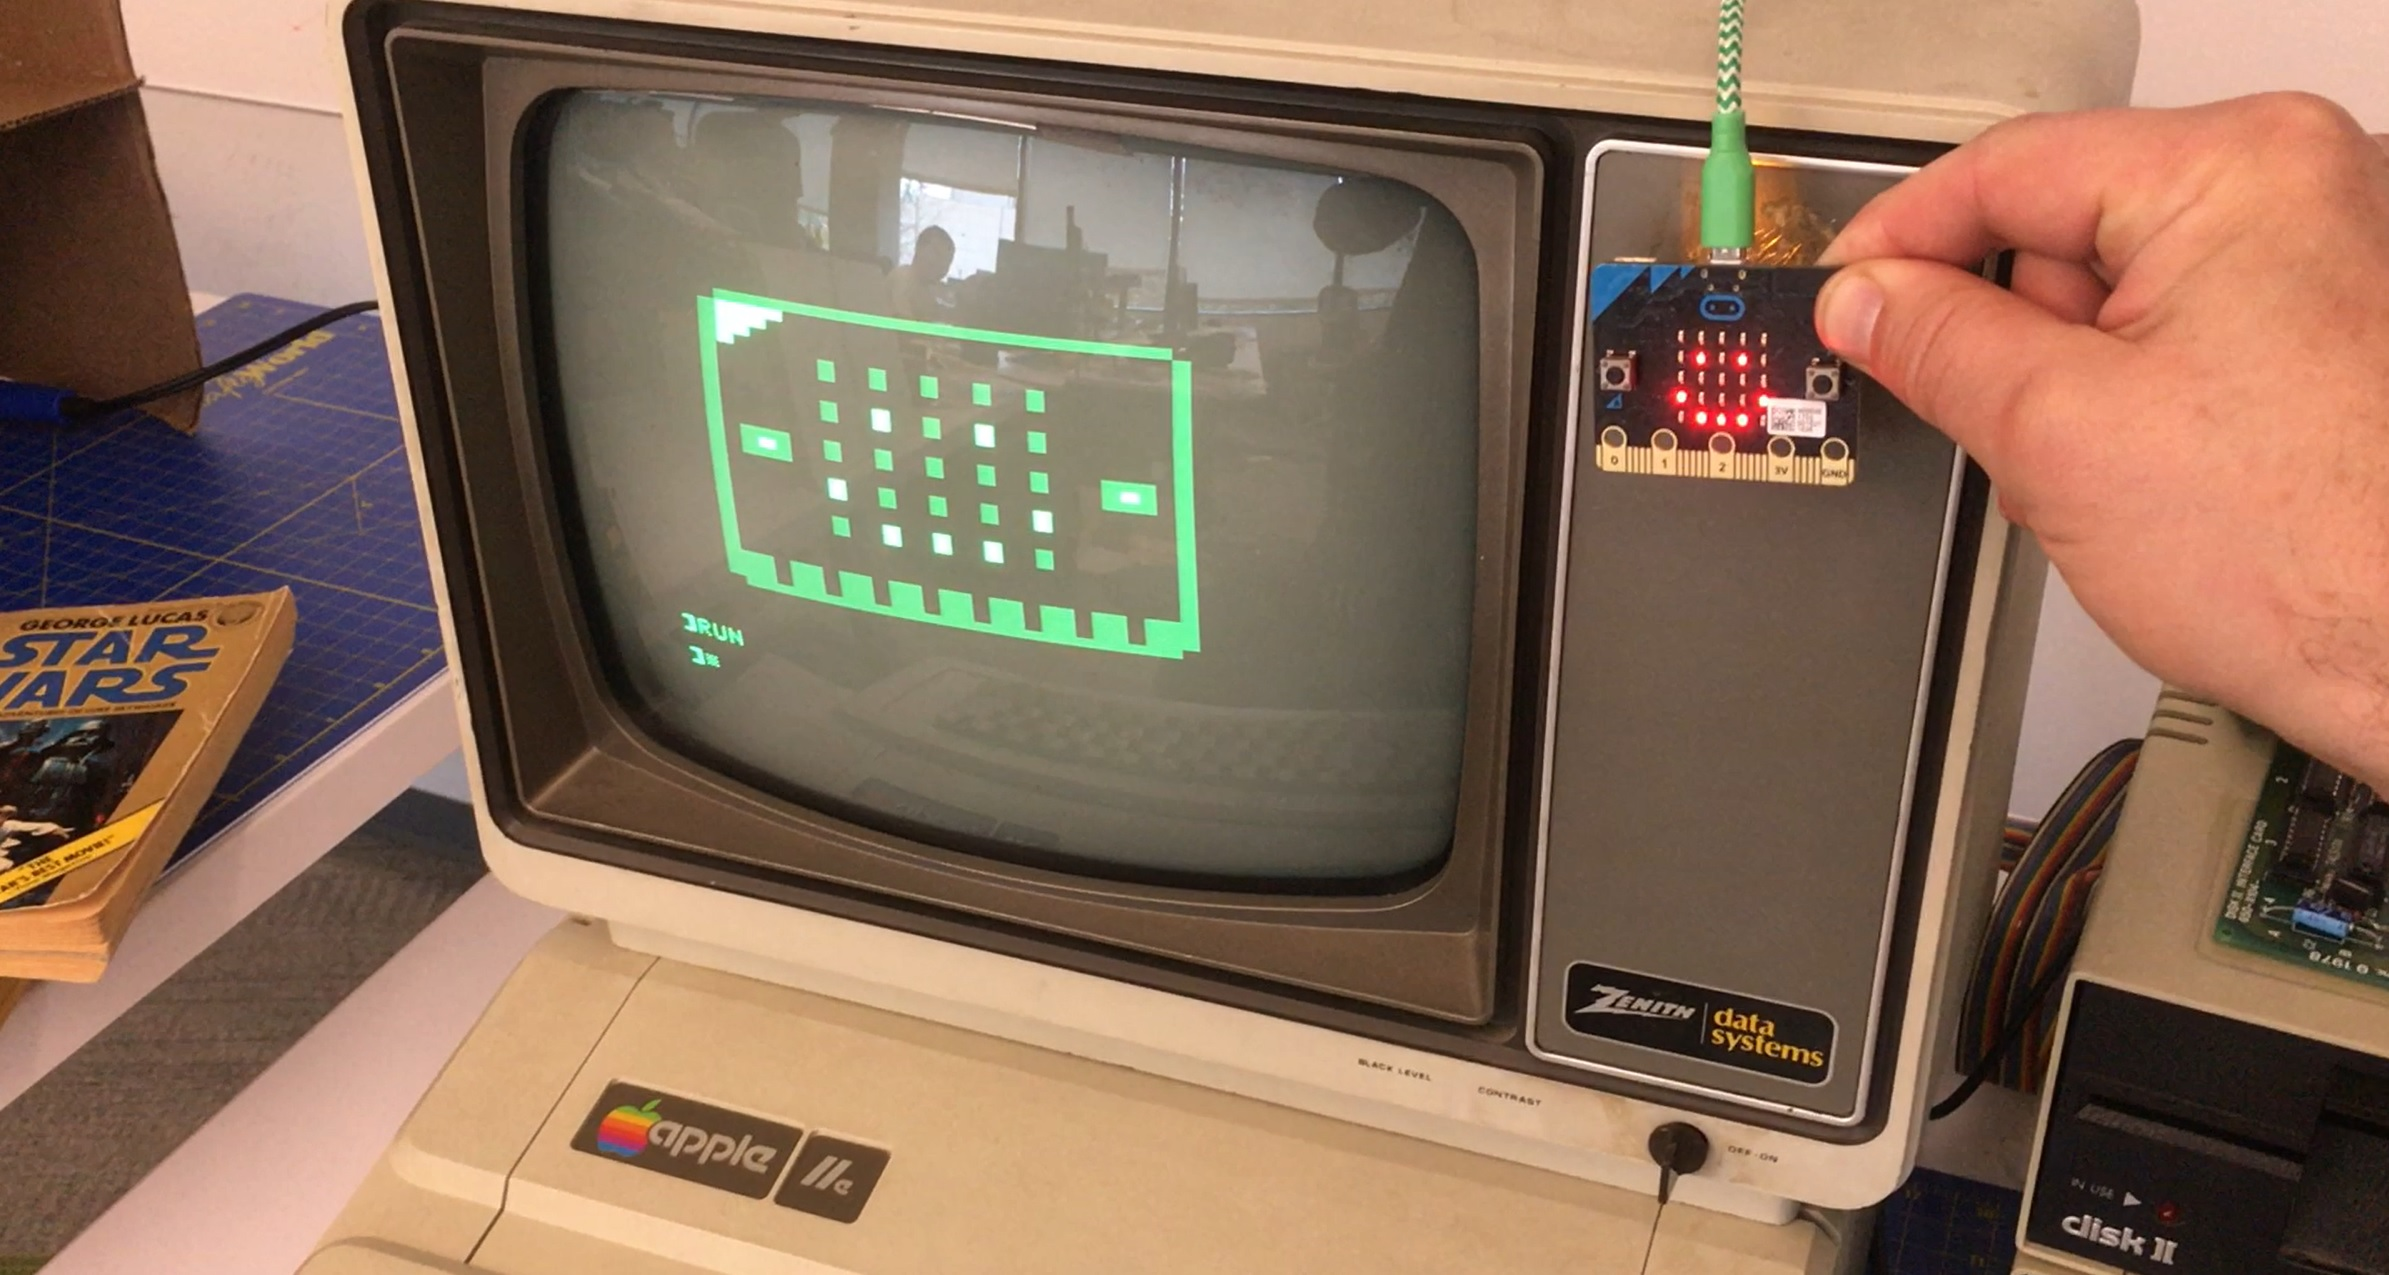 Picture of the Apple II